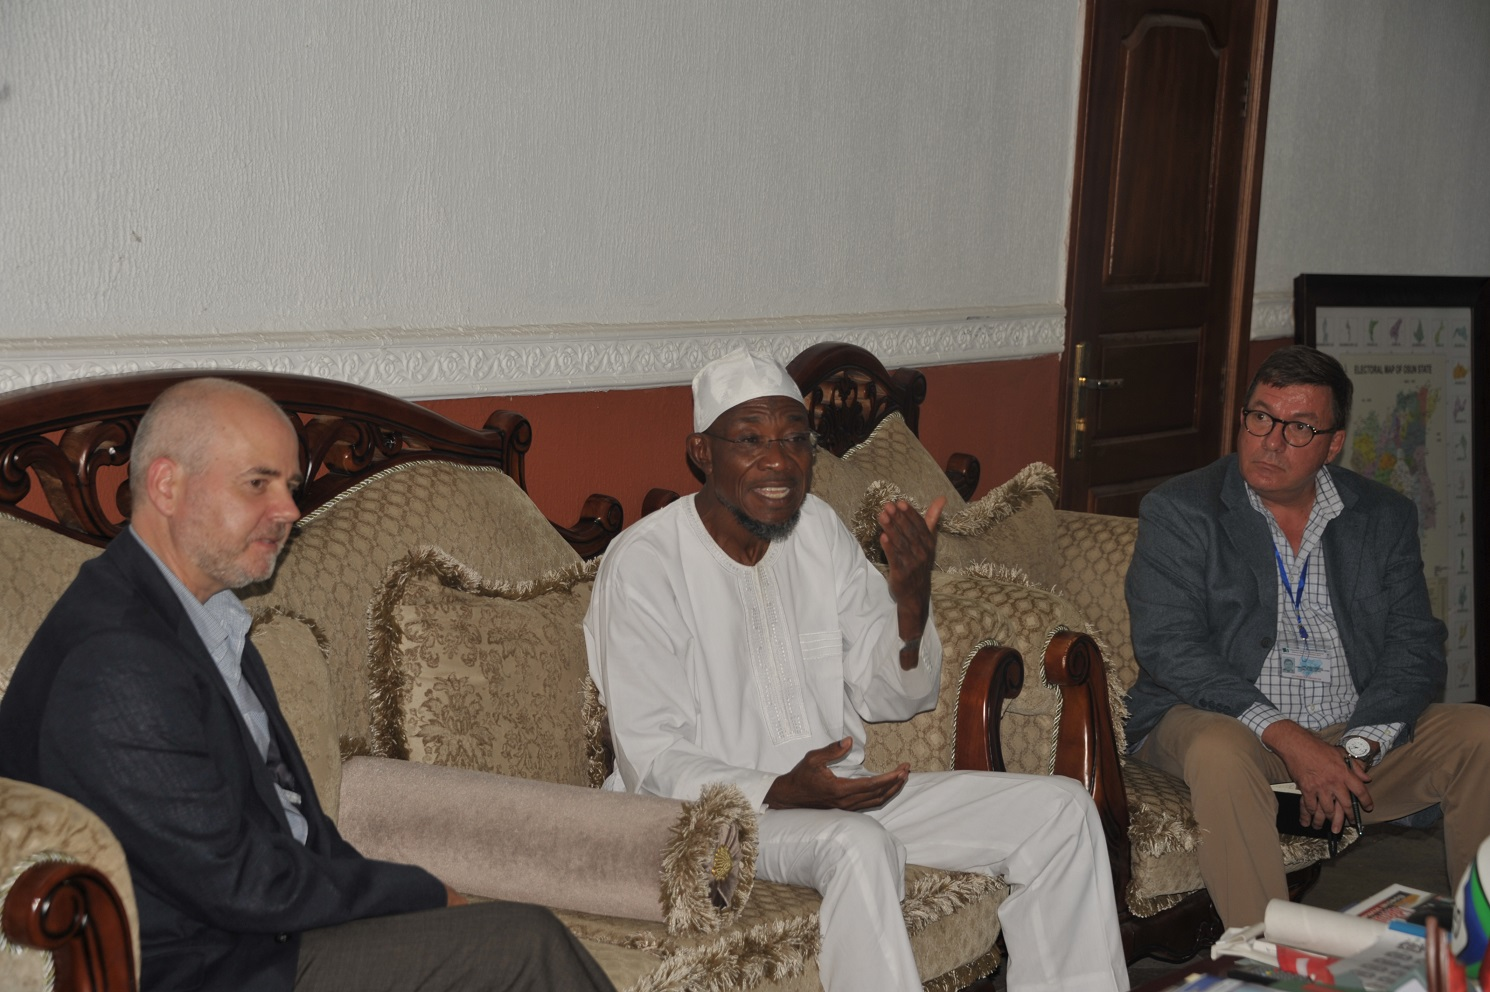 Governor State of Osun, Ogbeni Rauf Aregbesola, European Union Election Monitoring Coordinator, Mr Paul Edwards and Ambassador of Kingdom of the Netherlands,Mr John c.m Groffen, during a Courtesy Visit to the Governor at Government House, Osogbo on Sunday 10th-08-